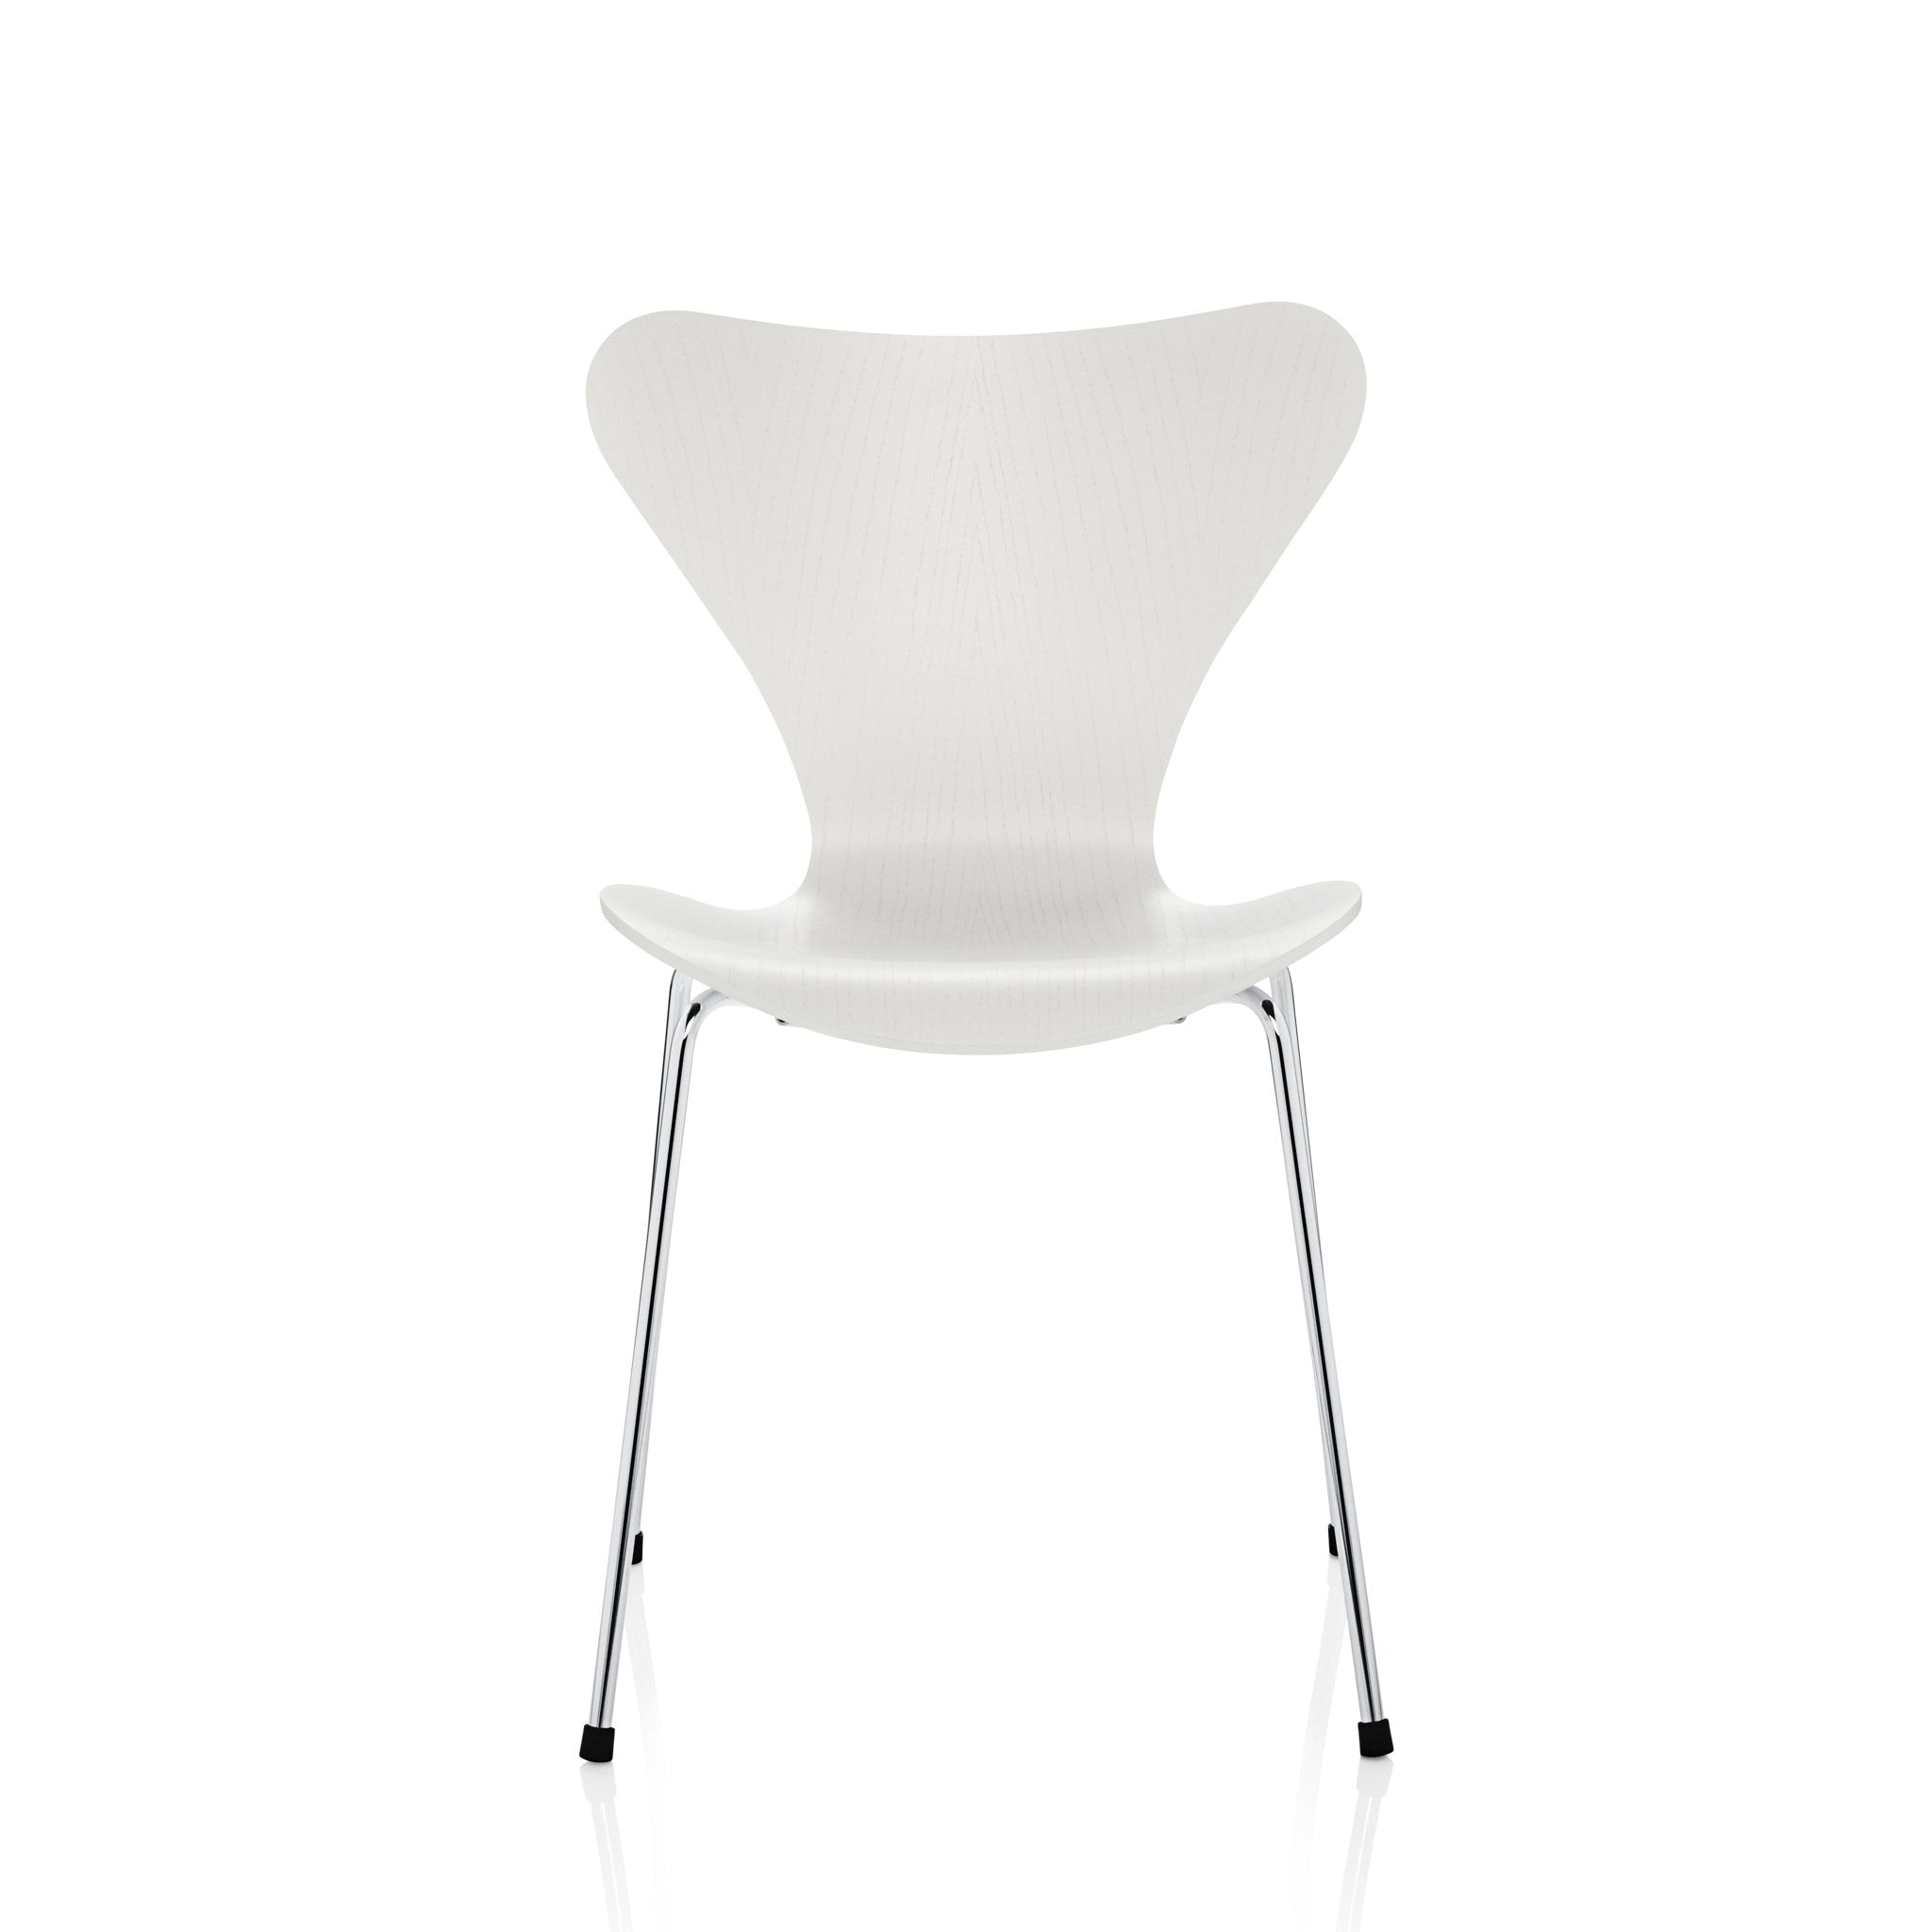 Series 7 Chair by Fritz Hansen